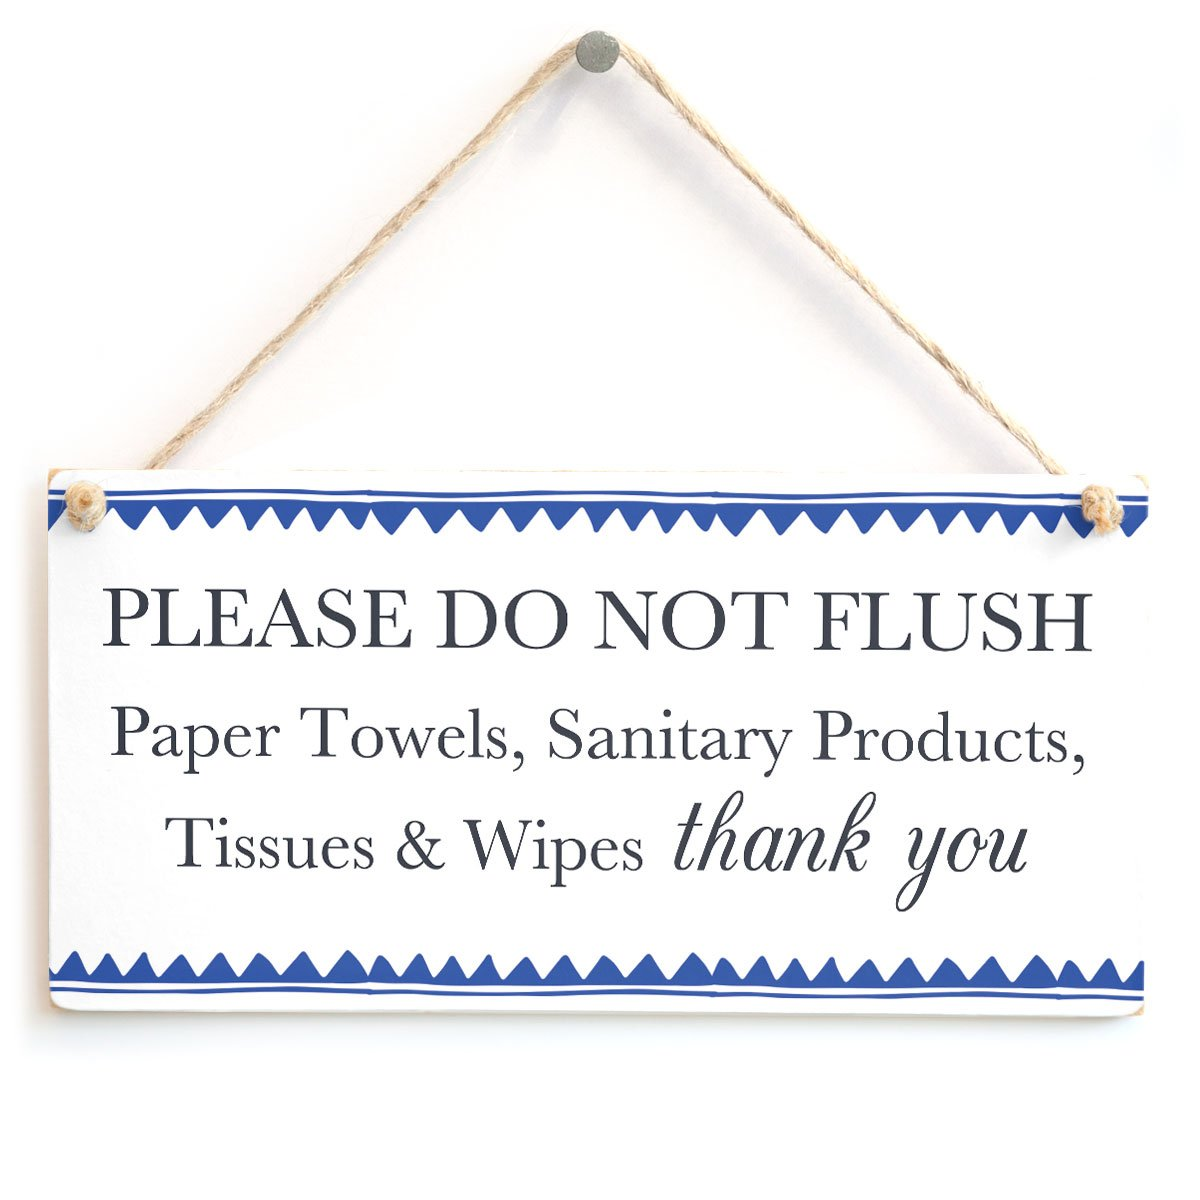 PLEASE DO NOT FLUSH Paper towels etc Thank You Blue Border Septic Tank Thank You Sign For Bathroom Or Toilet